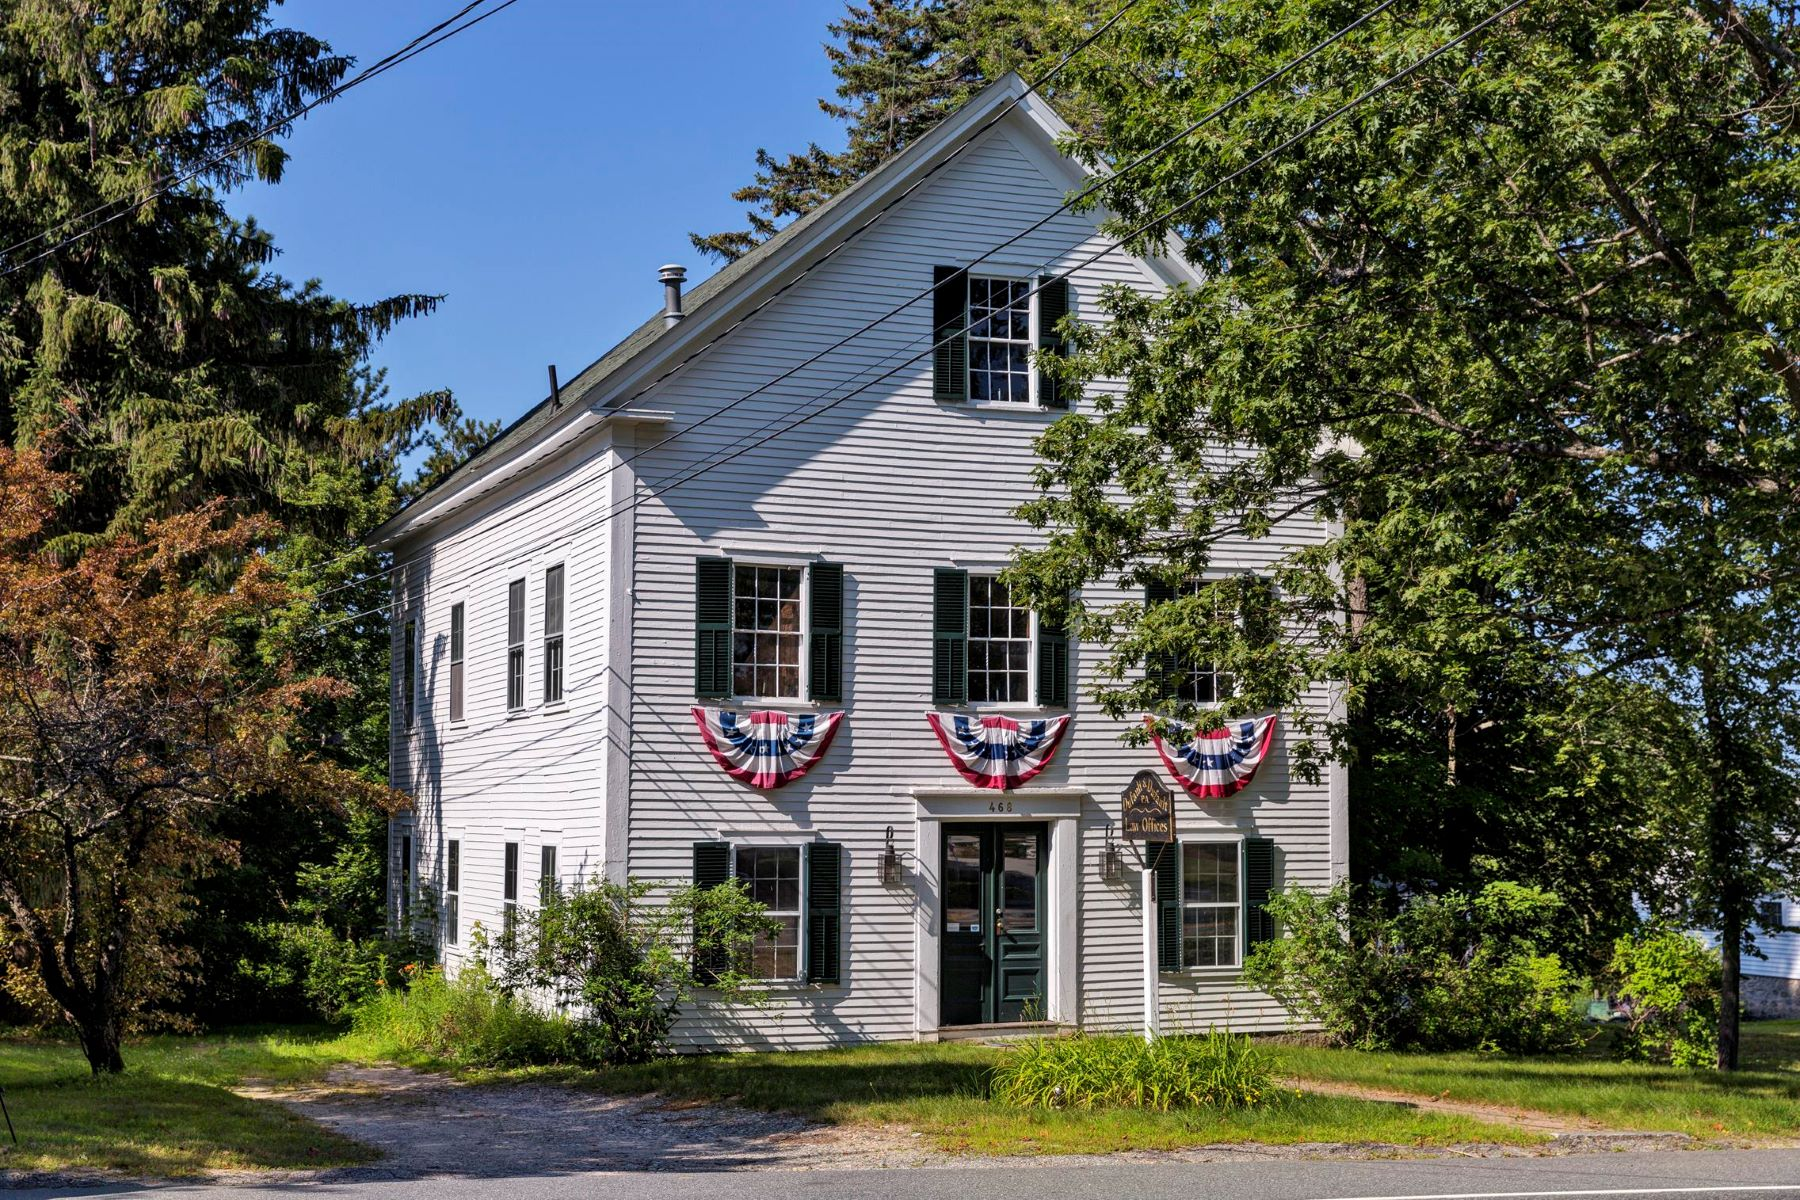 Single Family Homes for Active at The Historic Grange 468 Main Street New London, New Hampshire 03257 United States